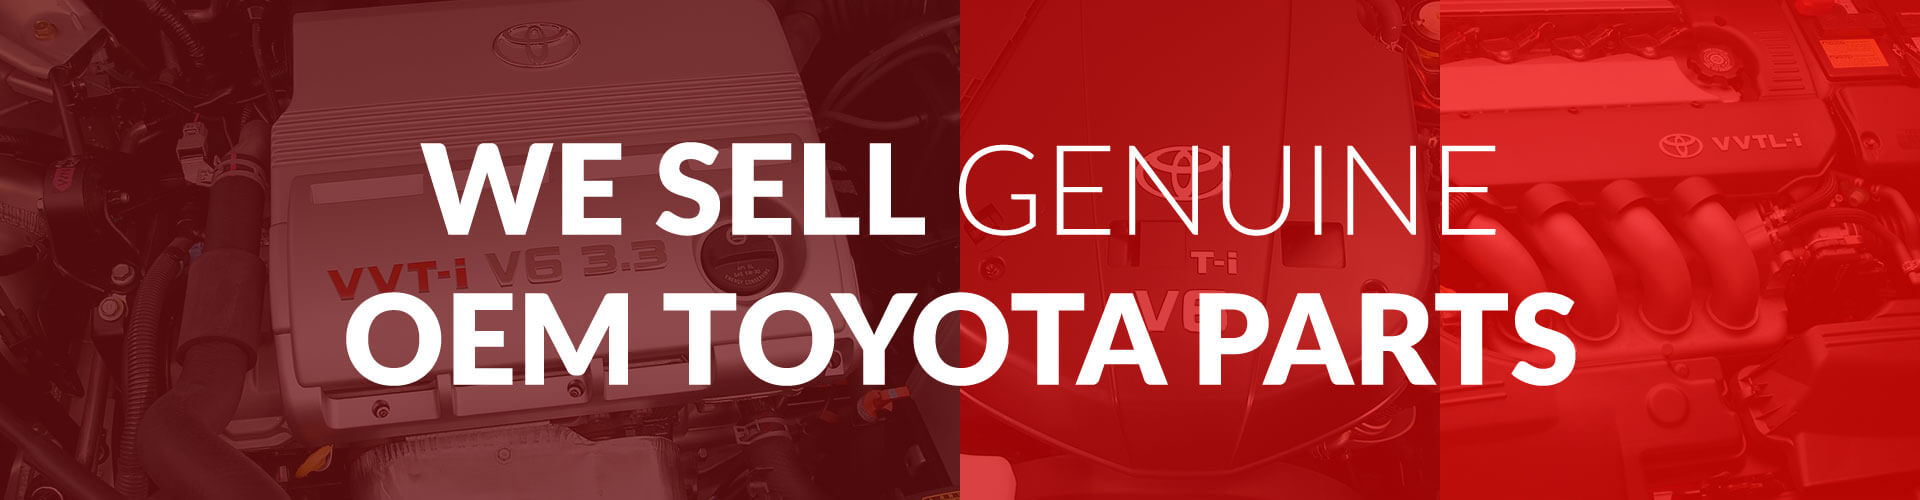 Genuine OEM Toyota Parts